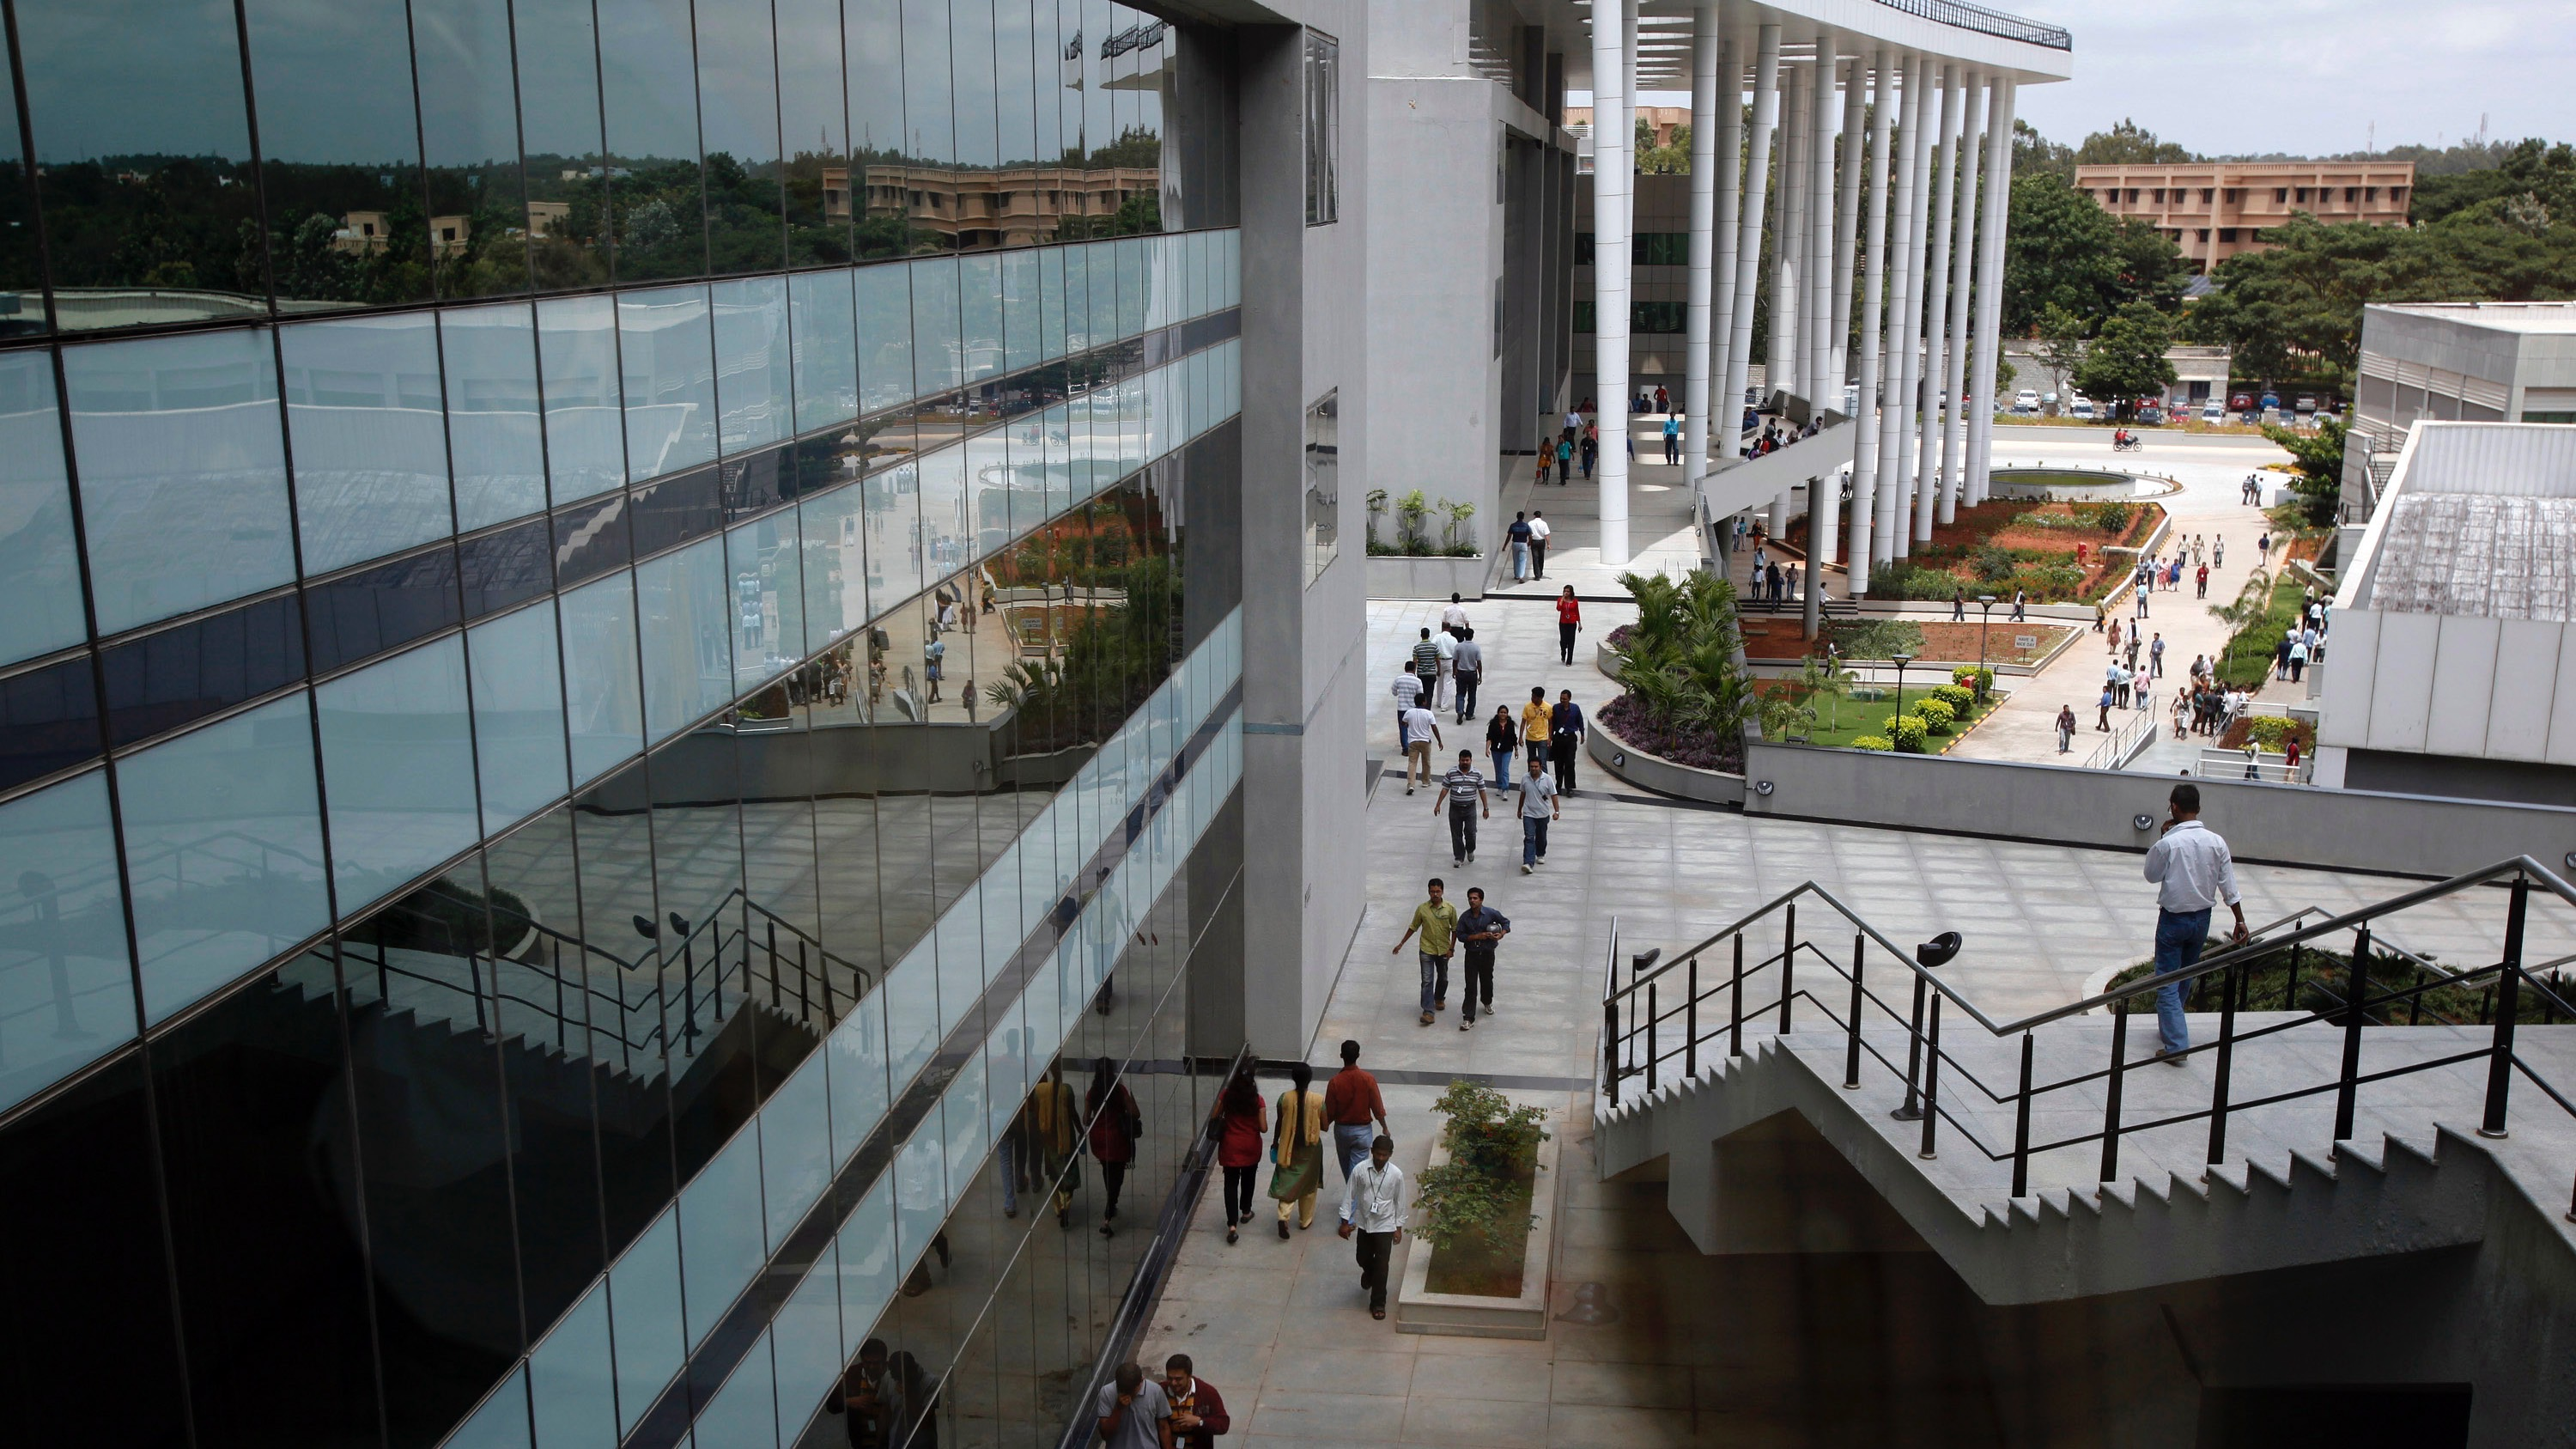 Indian software services firm Wipro Ltd. employees walk inside the company campus in Bangalore, India, Friday, July 23, 2010. Wipro Ltd. said quarterly profit jumped 31 percent to 13.19 billion rupees ($284 million), beating expectations, as India's No. 3 outsourcer ramped up staffing to meet strong global demand.